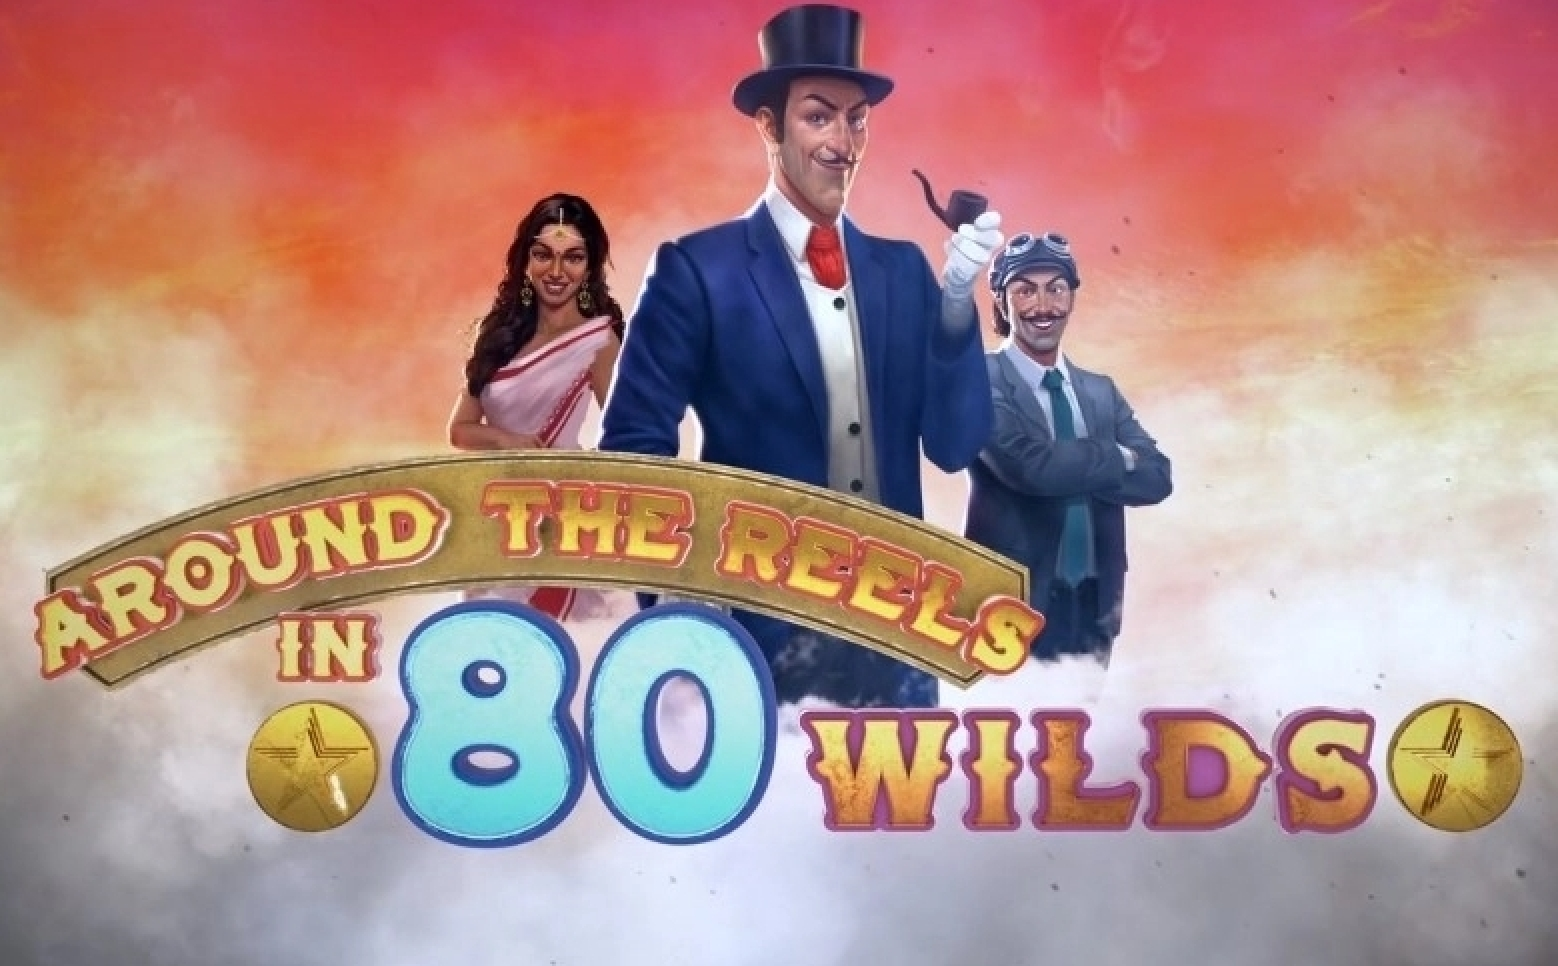 Reels in Around the Reels in 80 Wilds Slot Game by Roxor Gaming